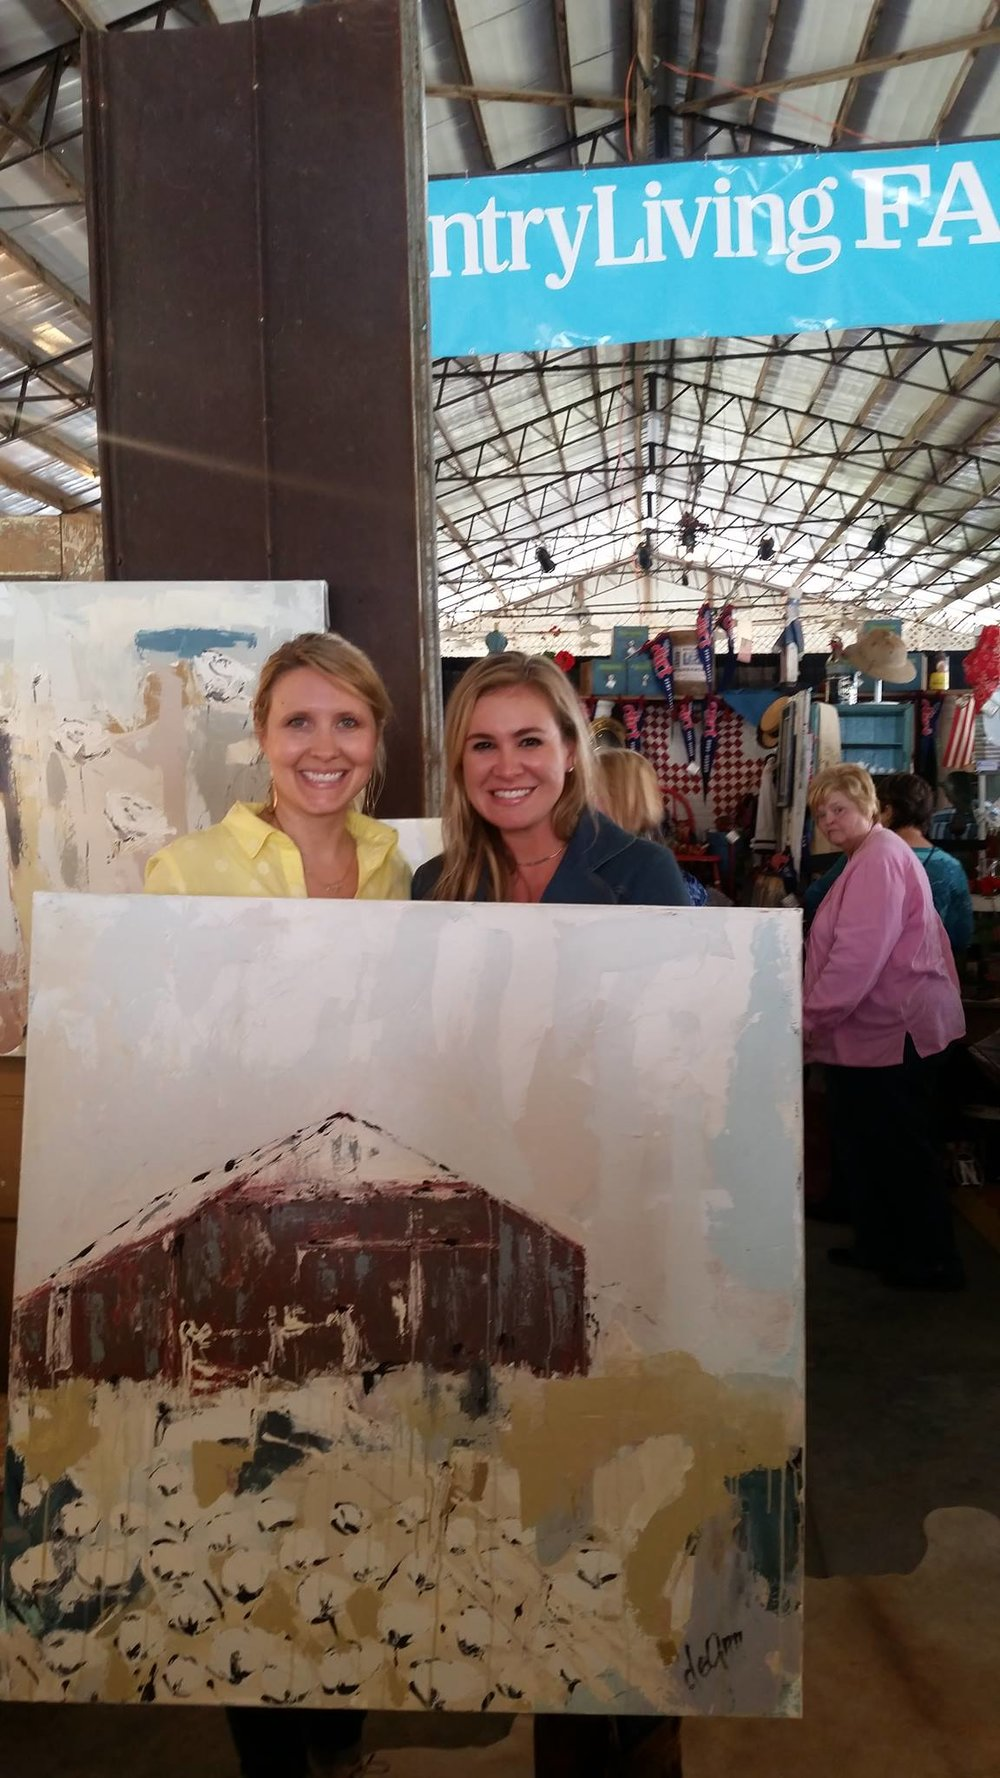 Deann and I with my custom work she painted.